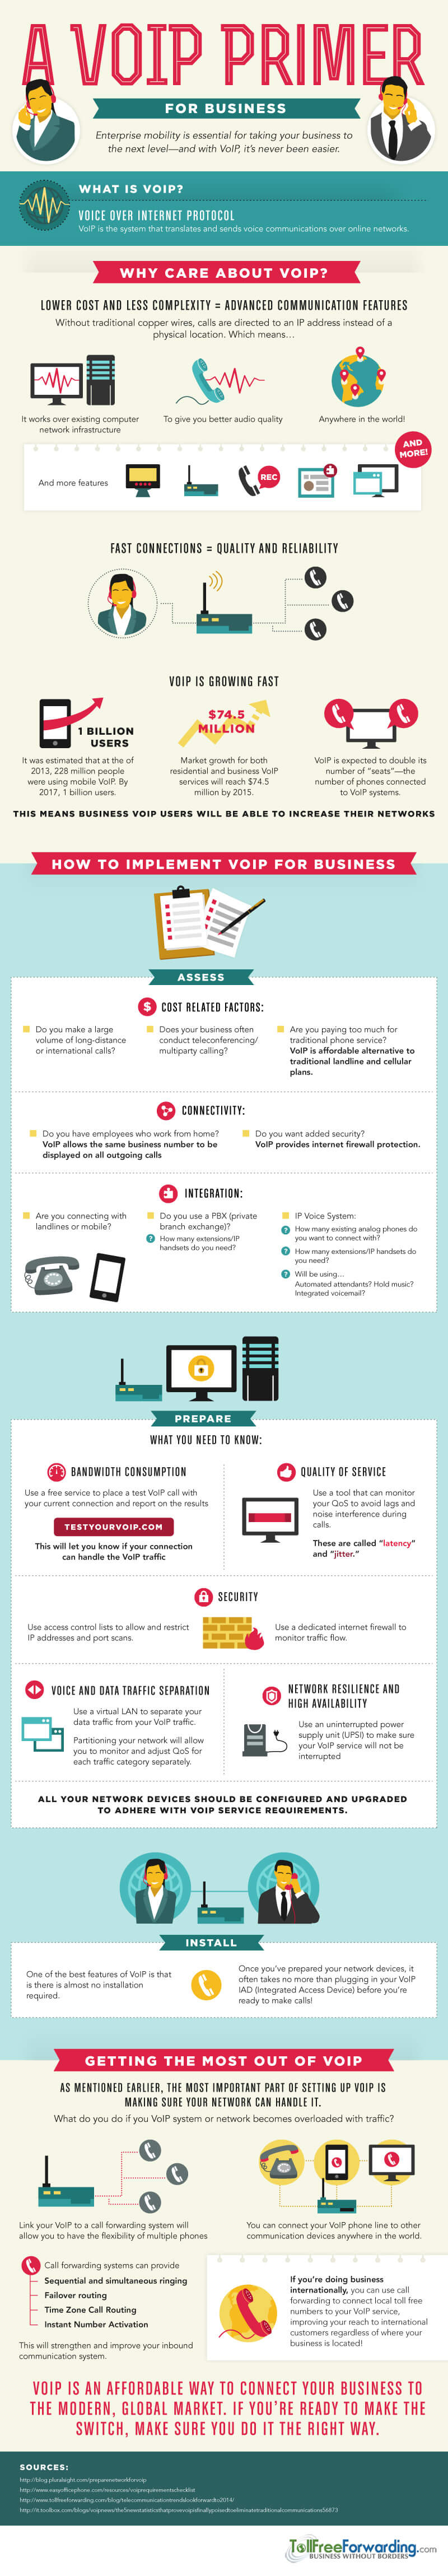 A VOIP Primer for Business